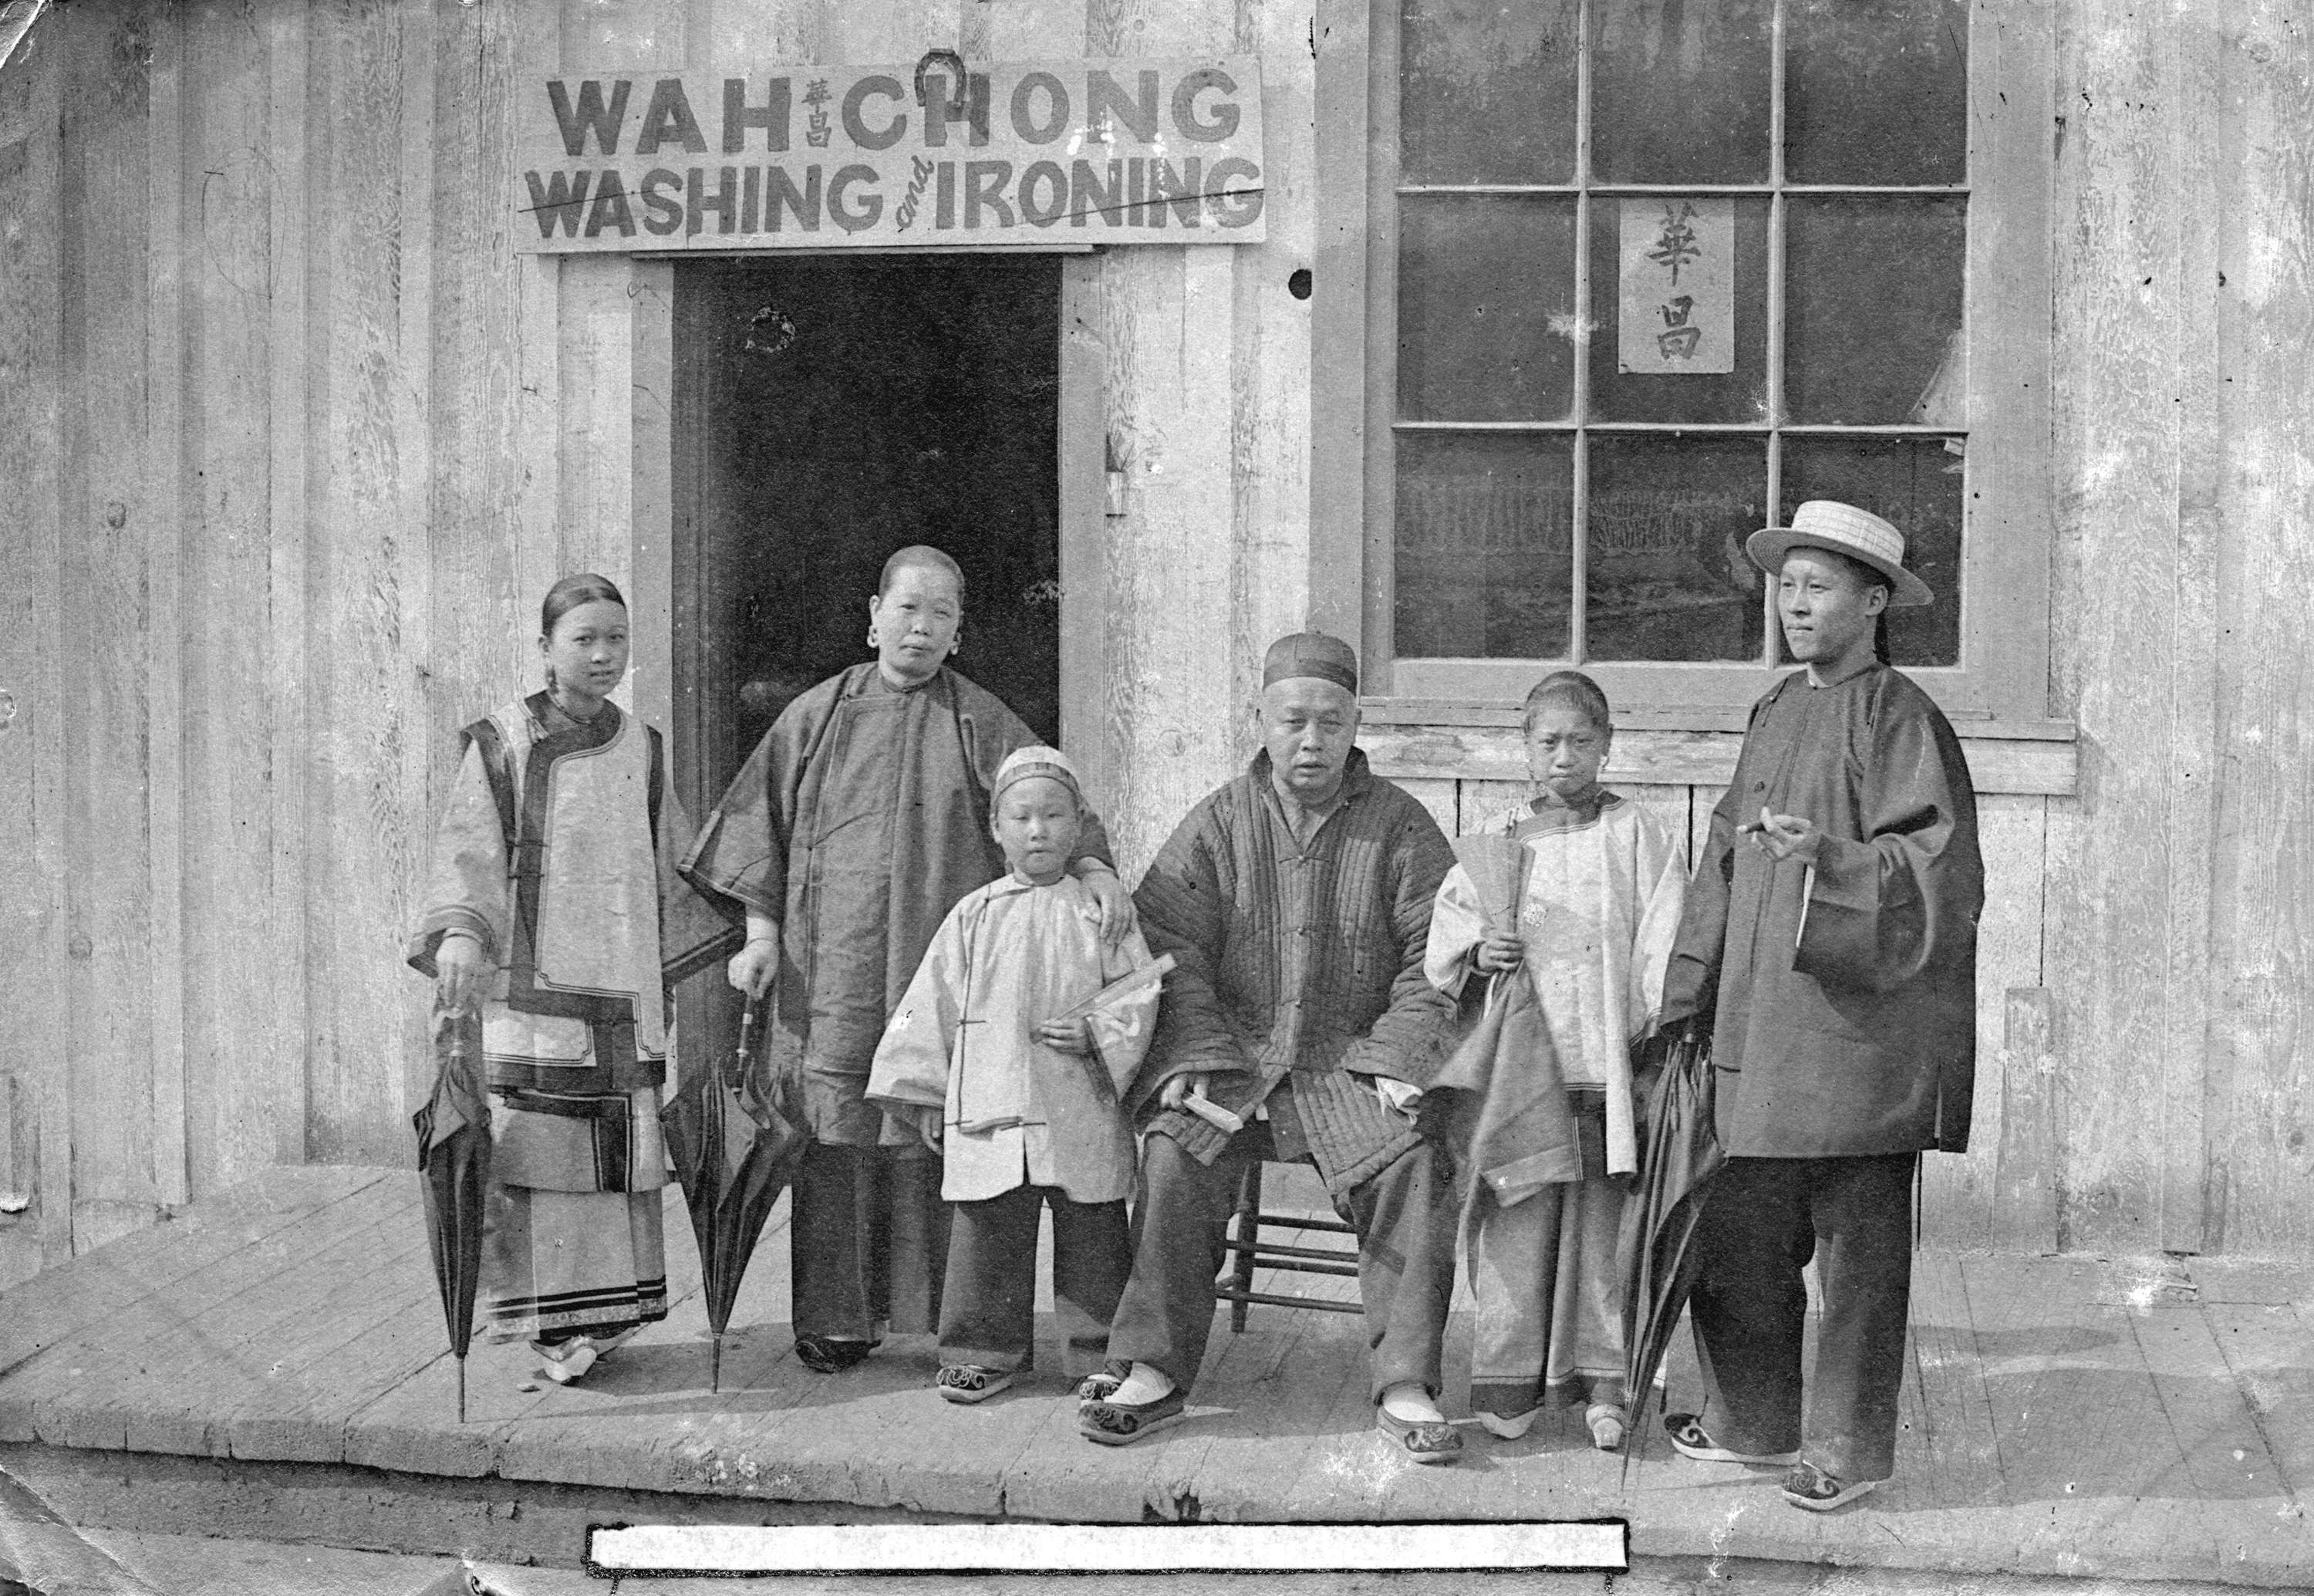 Une famille devant Wah Chong Washing and Ironing (lavage et repassage), 1895.